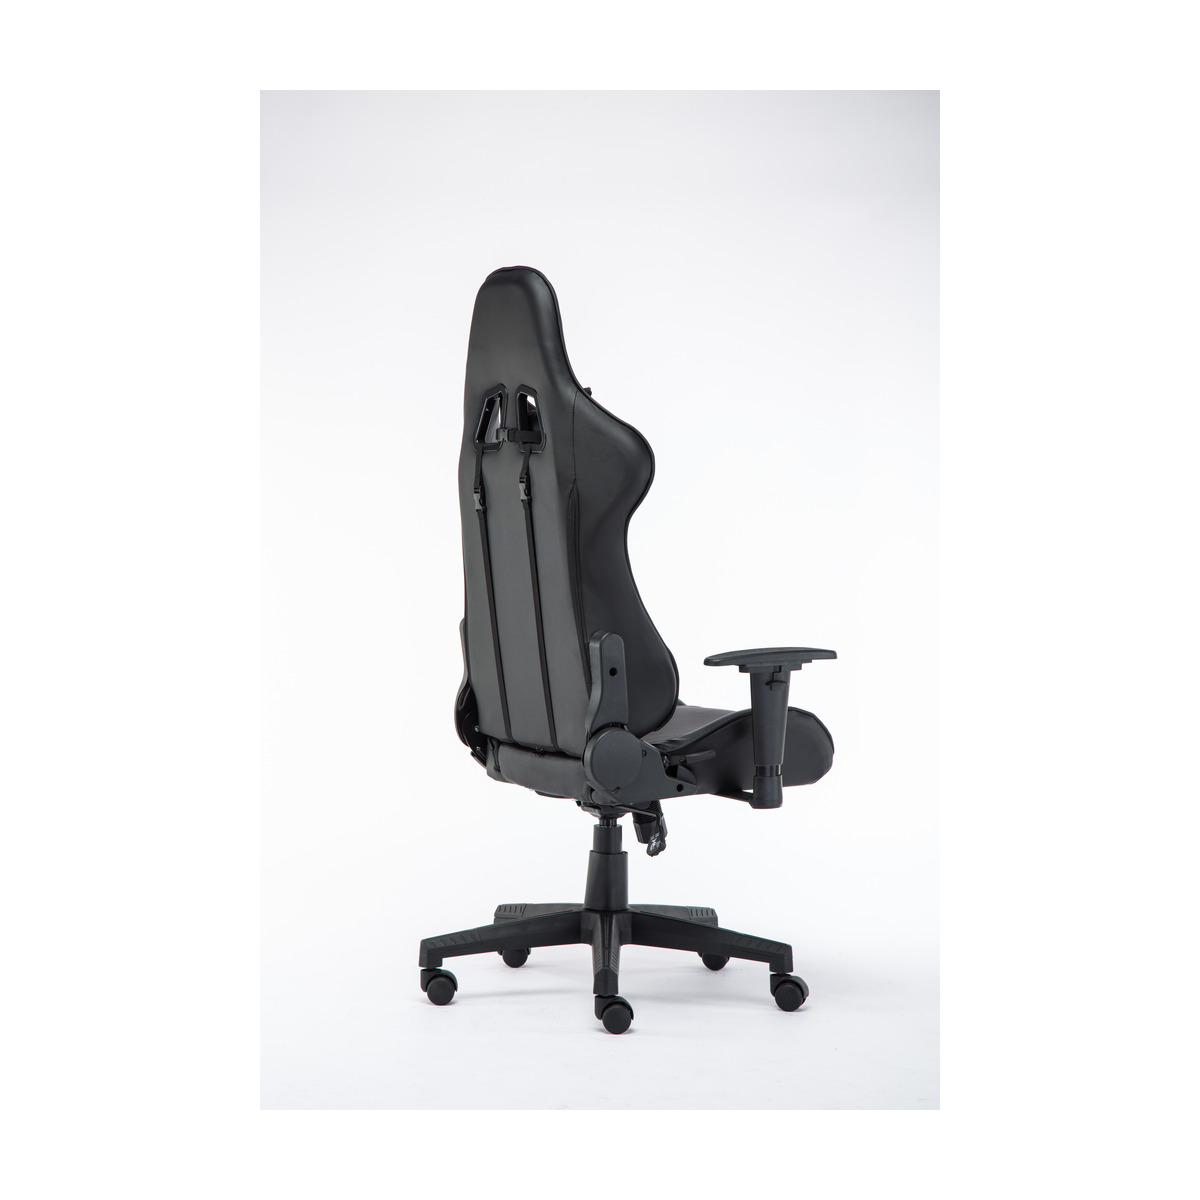 DACOTA GAMING CHAIR 210 BLACK